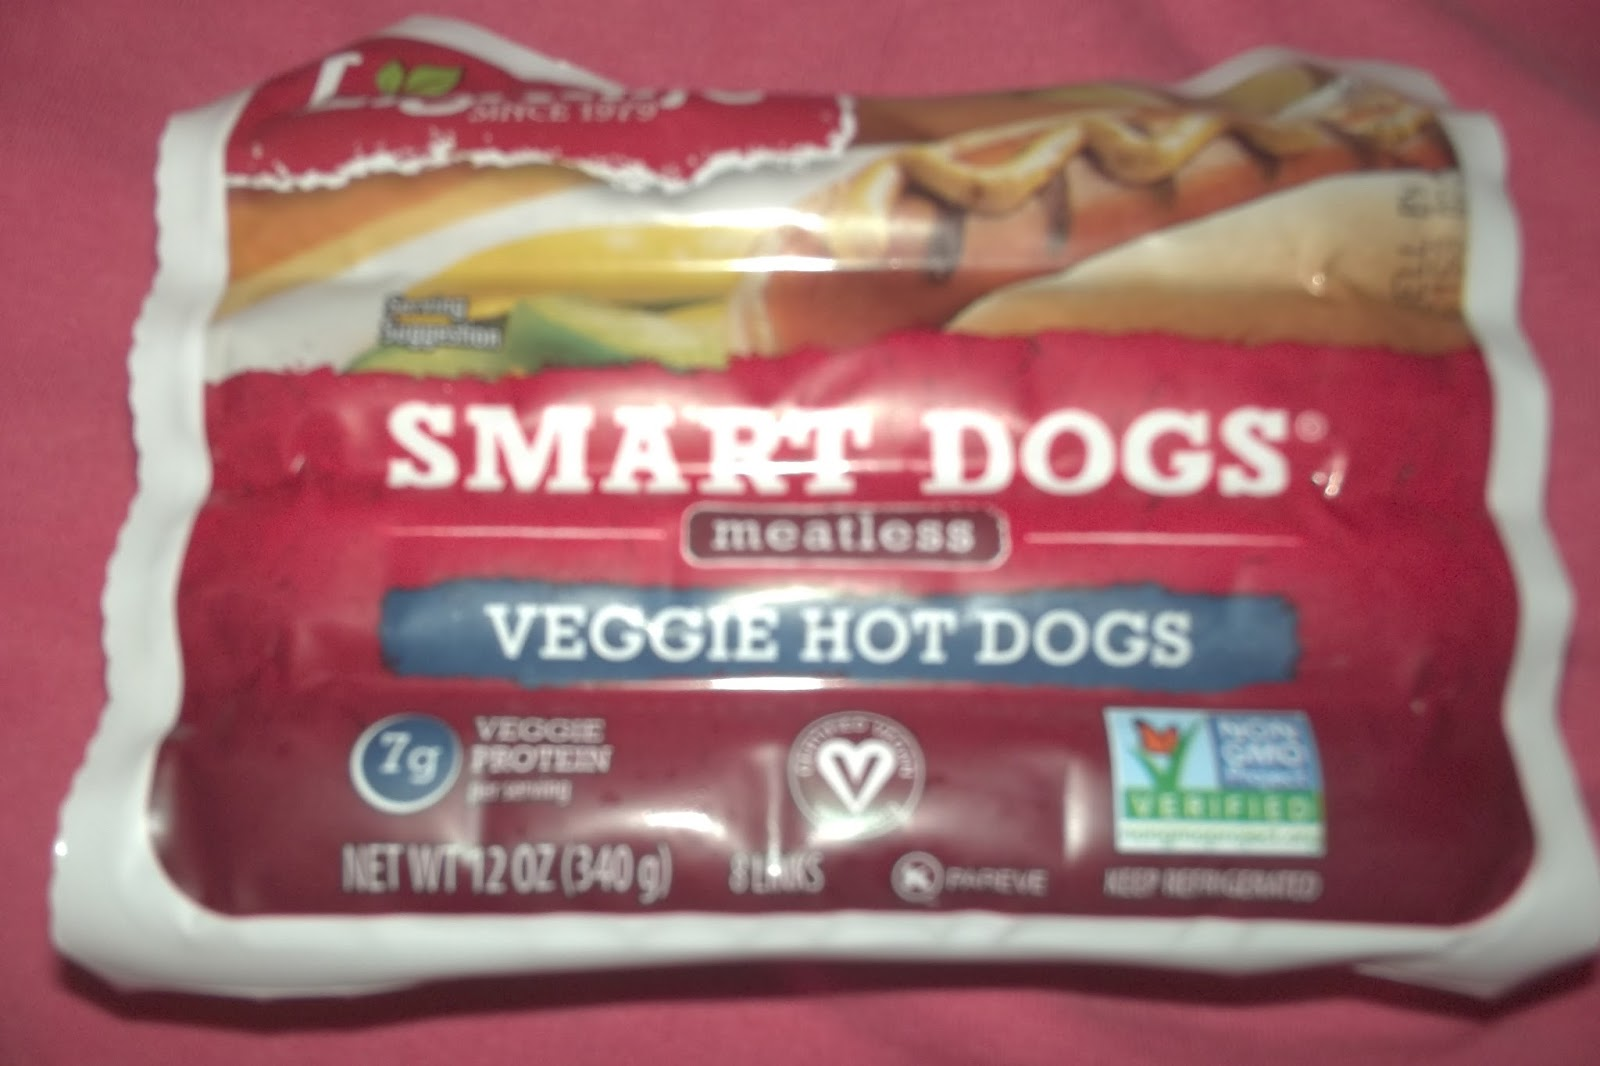 Veggie Hot Dogs By Lightlife Review